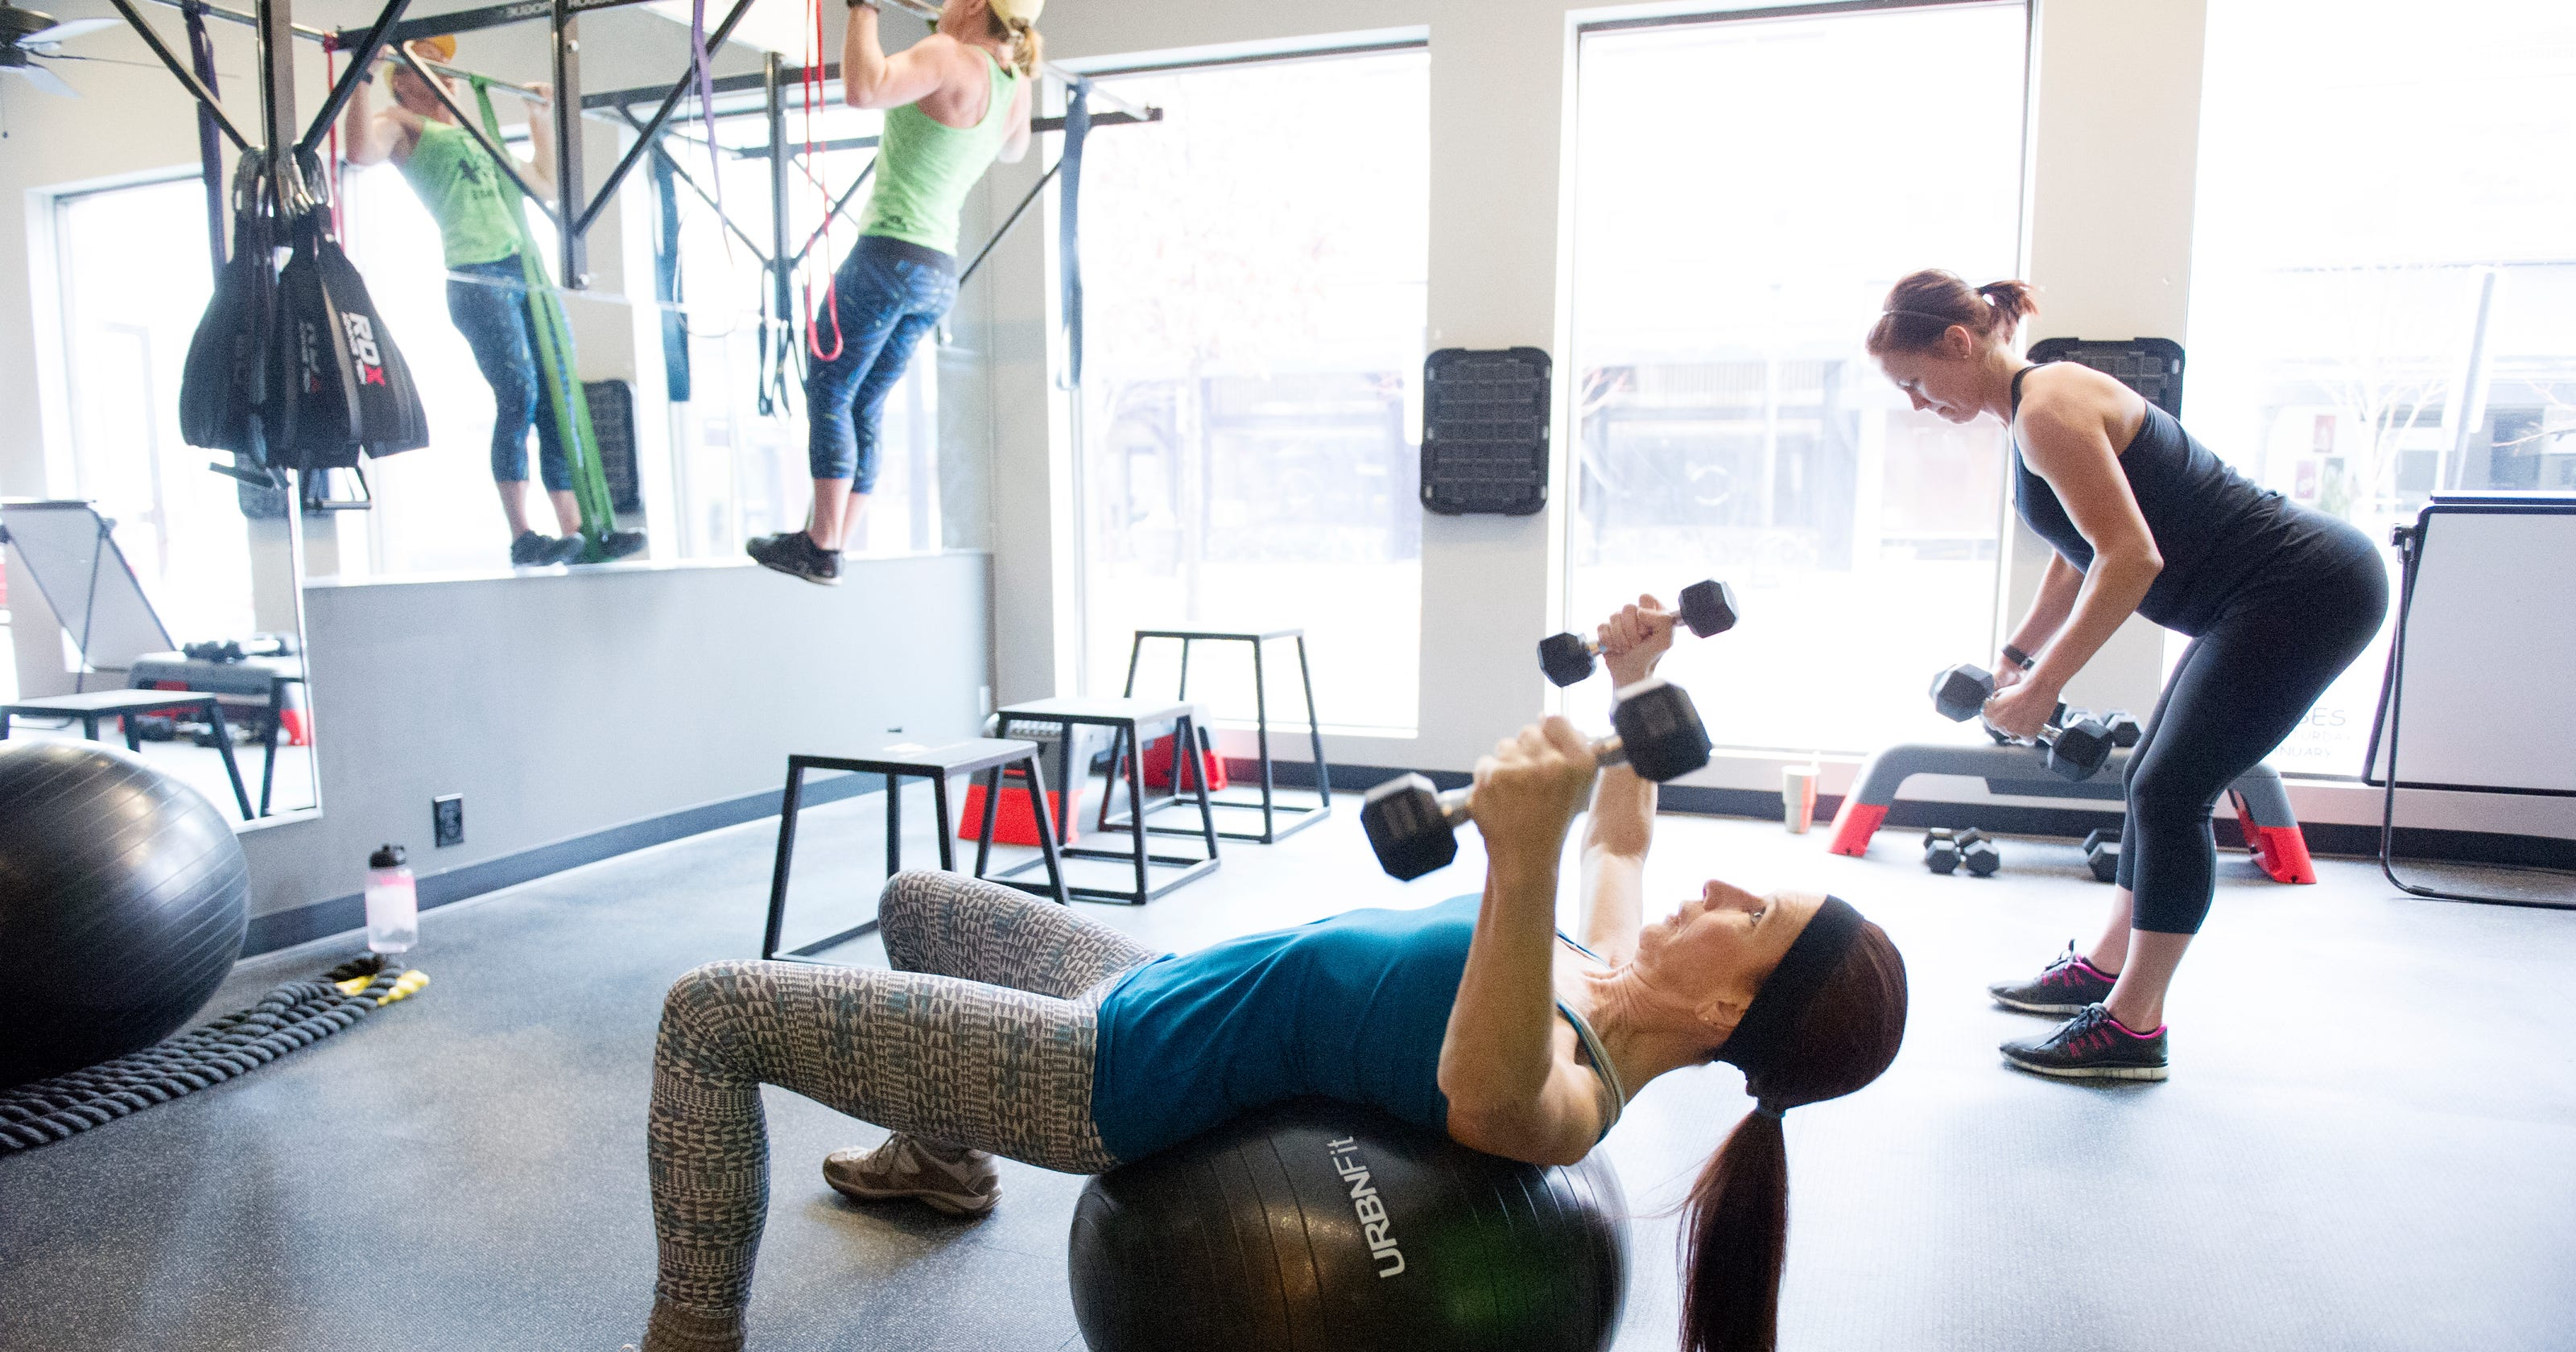 Downtown gym specializes in high-intensity training